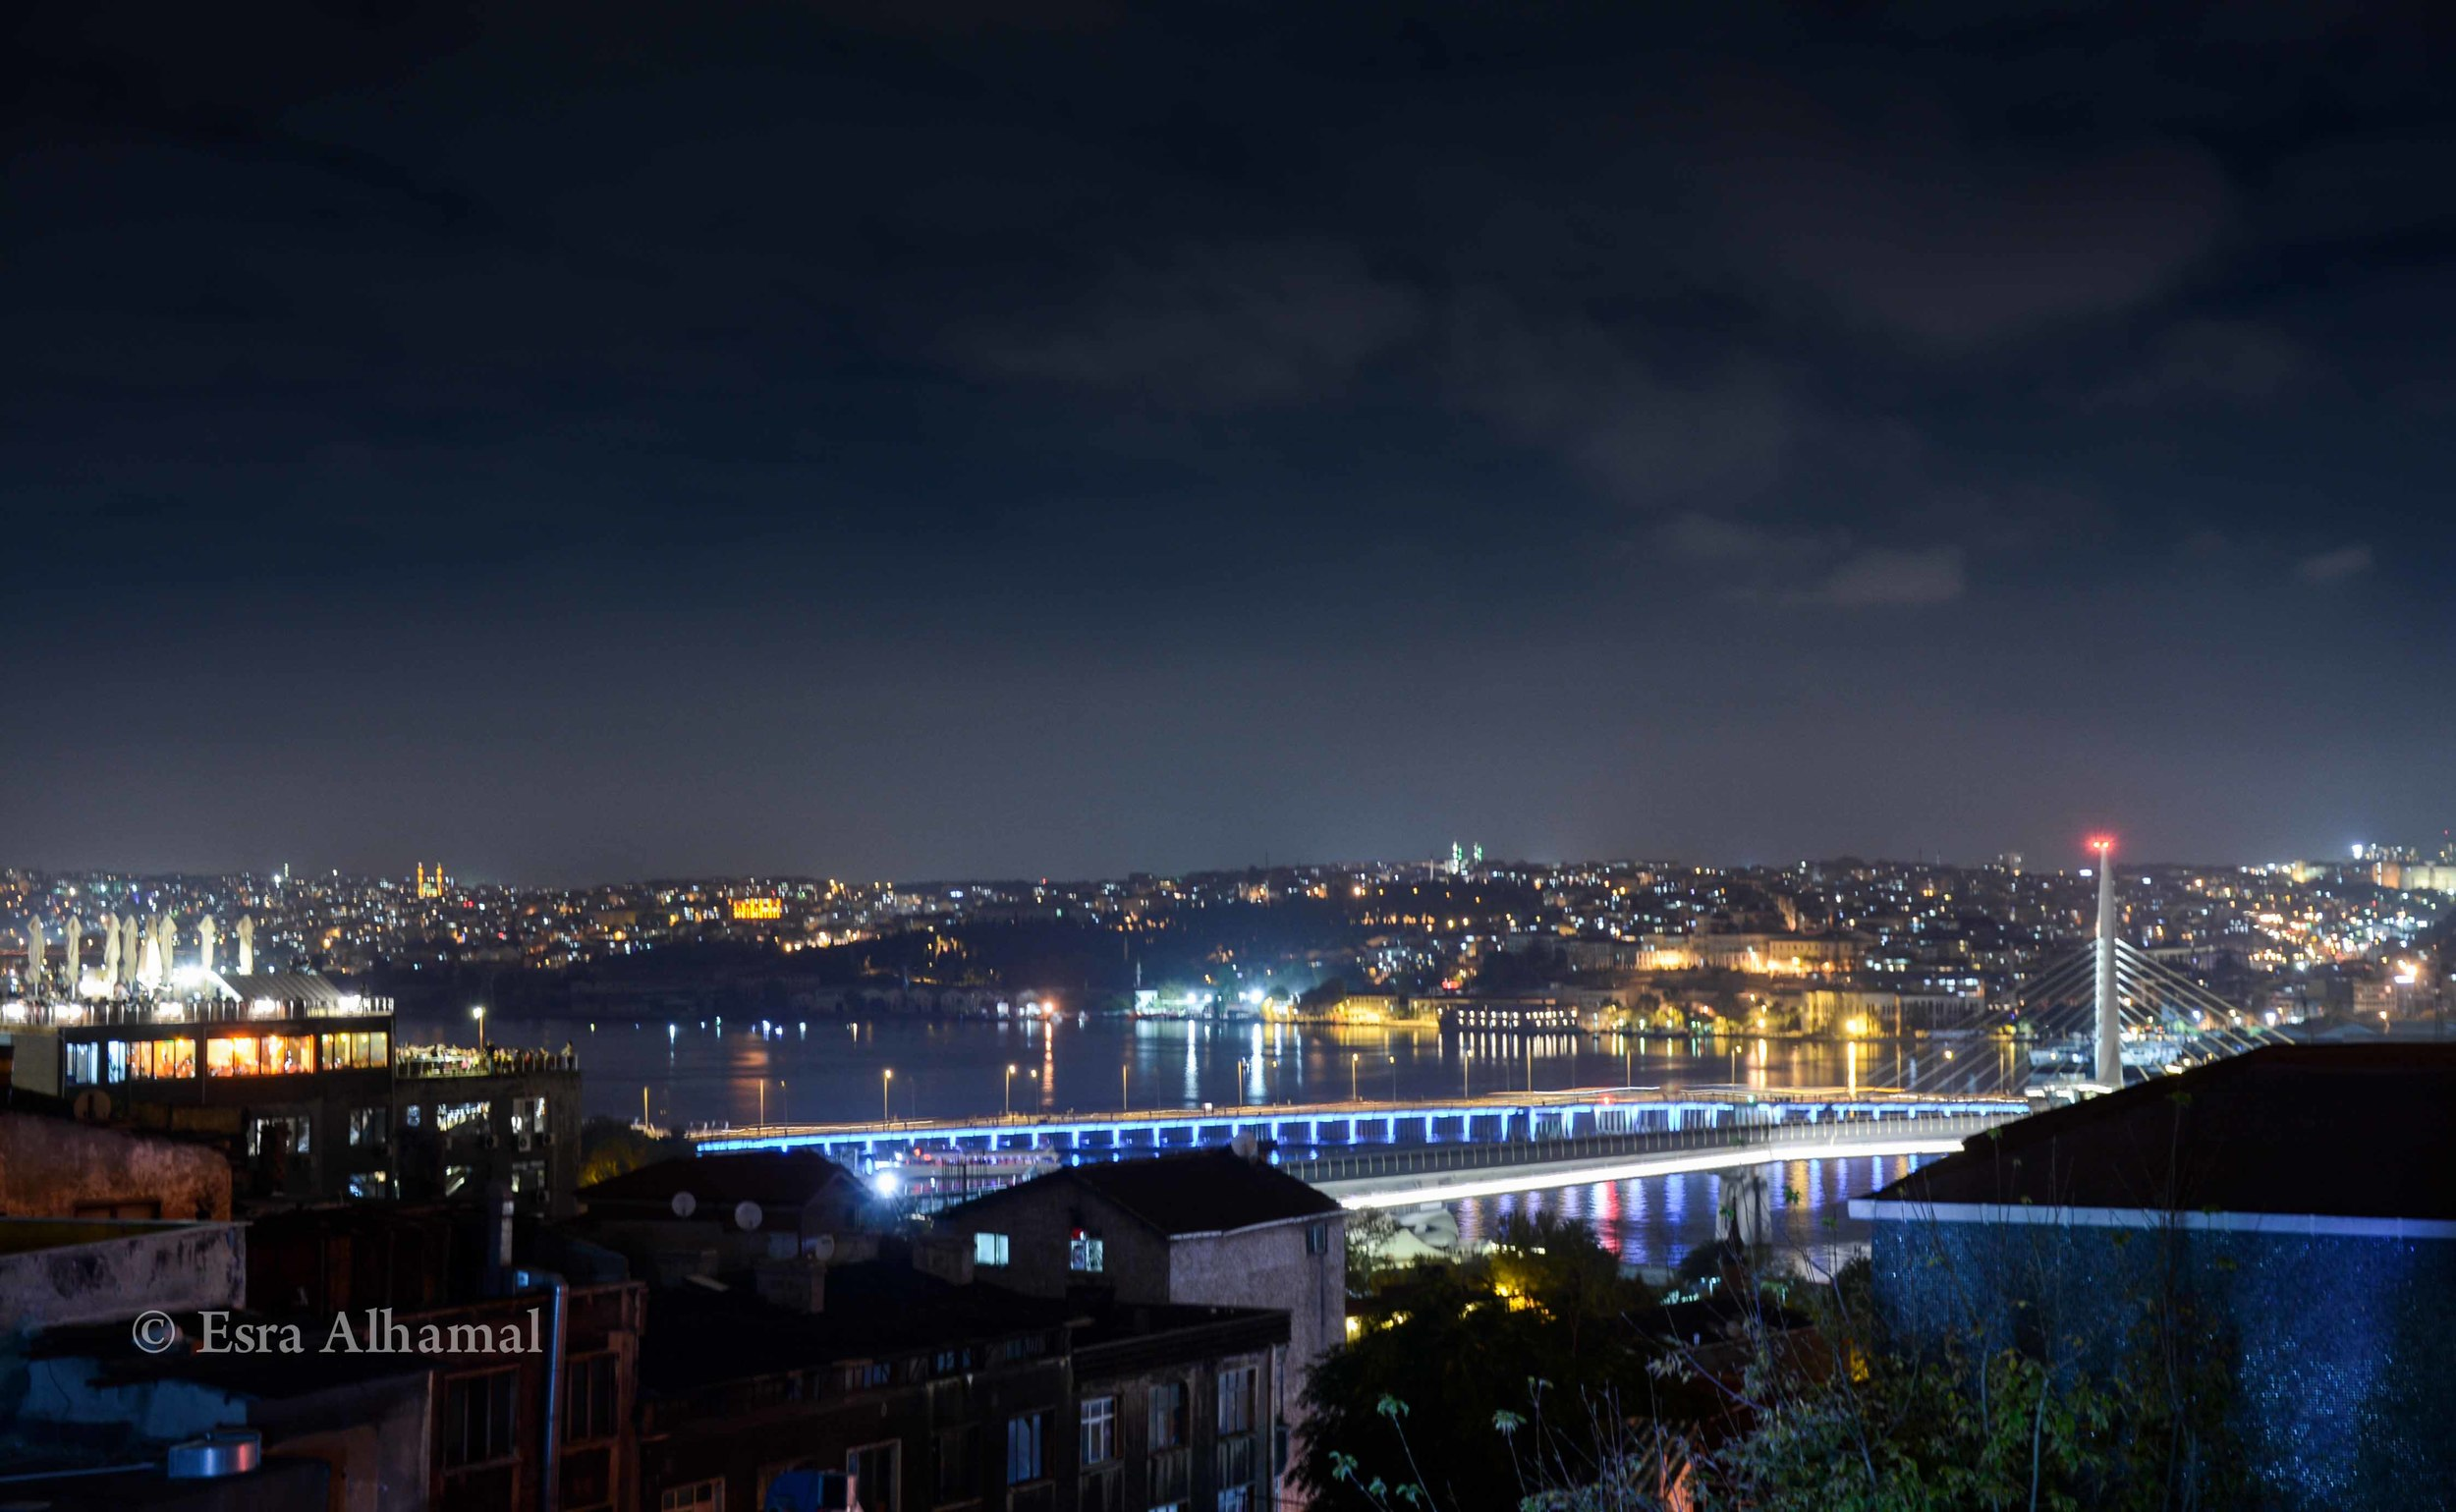 Just look at the gorgeous view of Istanbul that we stumbled upon!